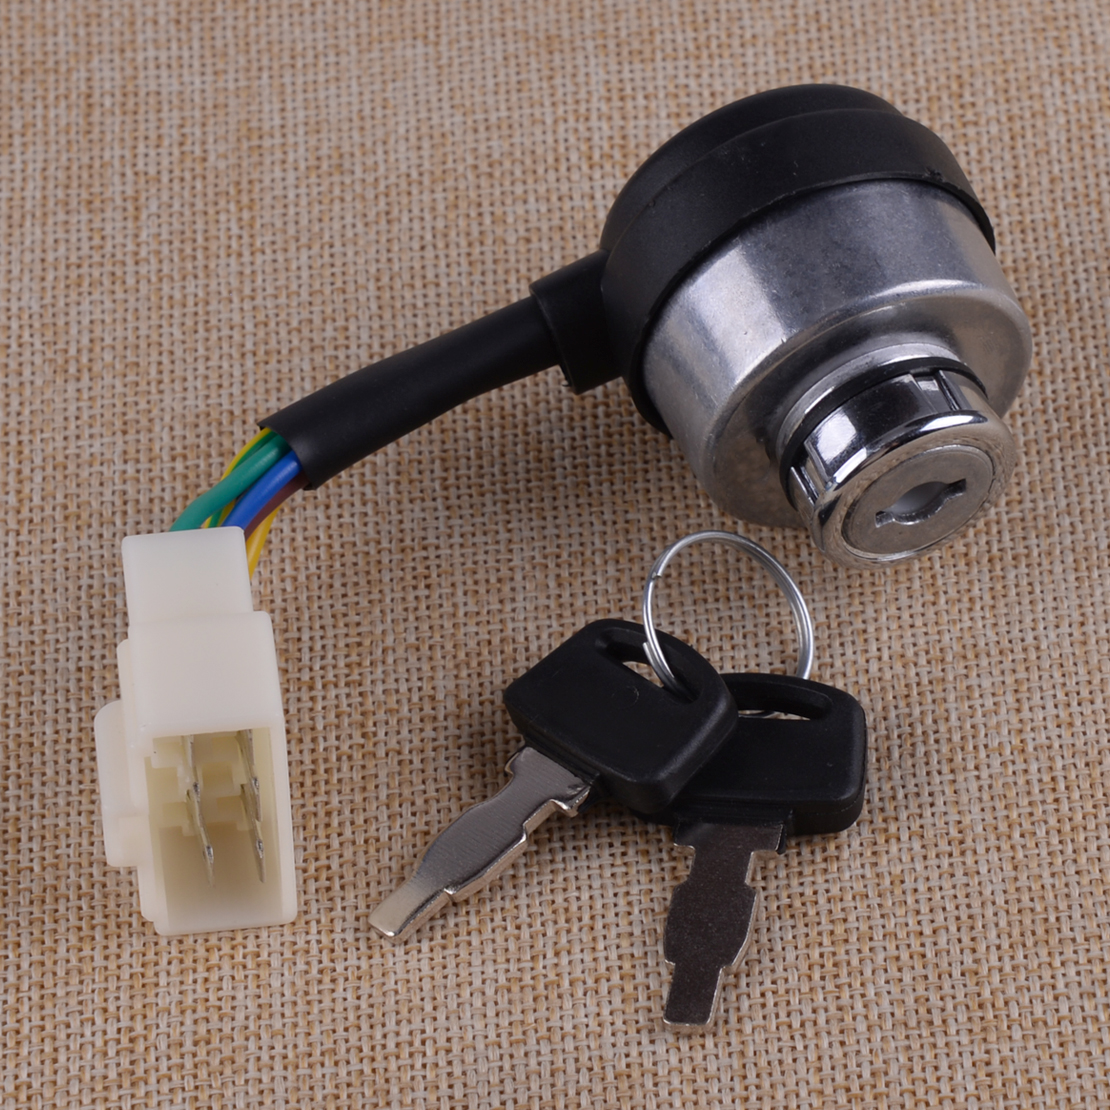 CITALL Chinese Gasoline Diesel Generator Gas Ignition Switch On Off Start Ignition Key Lock Combination 6 Wire Way